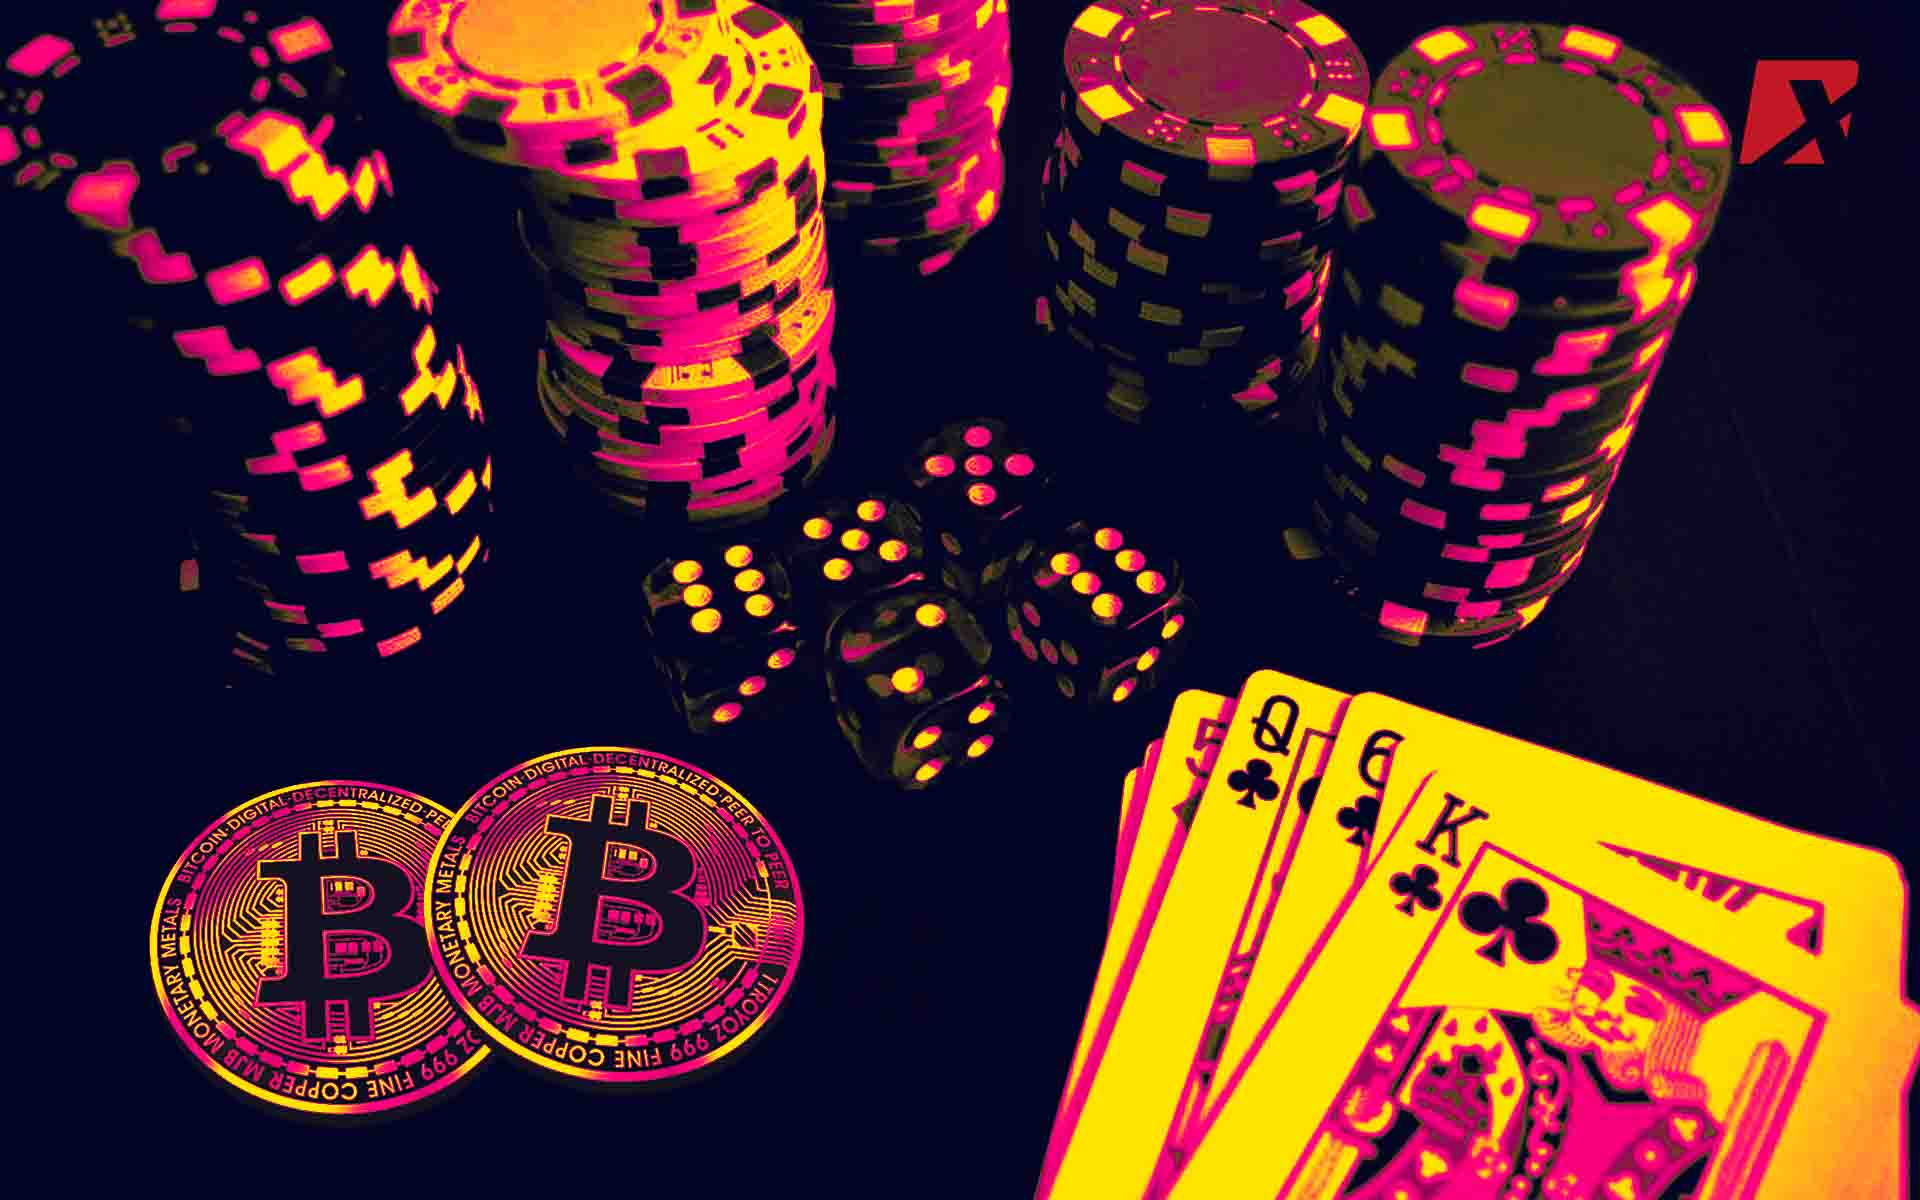 Online Casino Info Adds 2 New Bitcoin Casino Gaming Sites